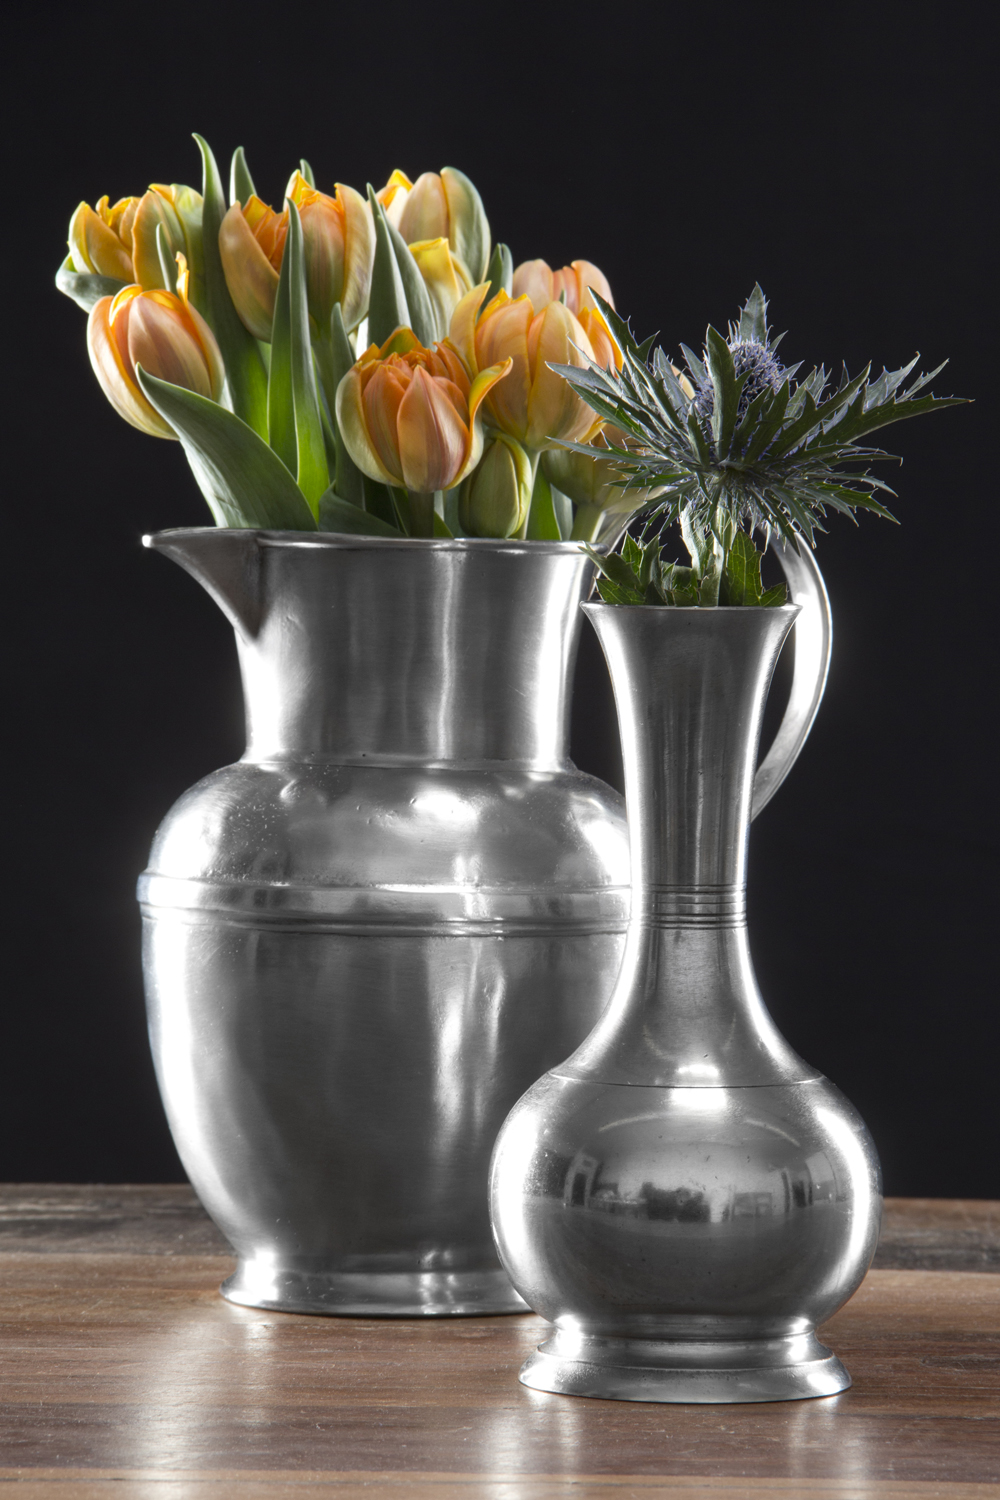 Match Pewter Vases